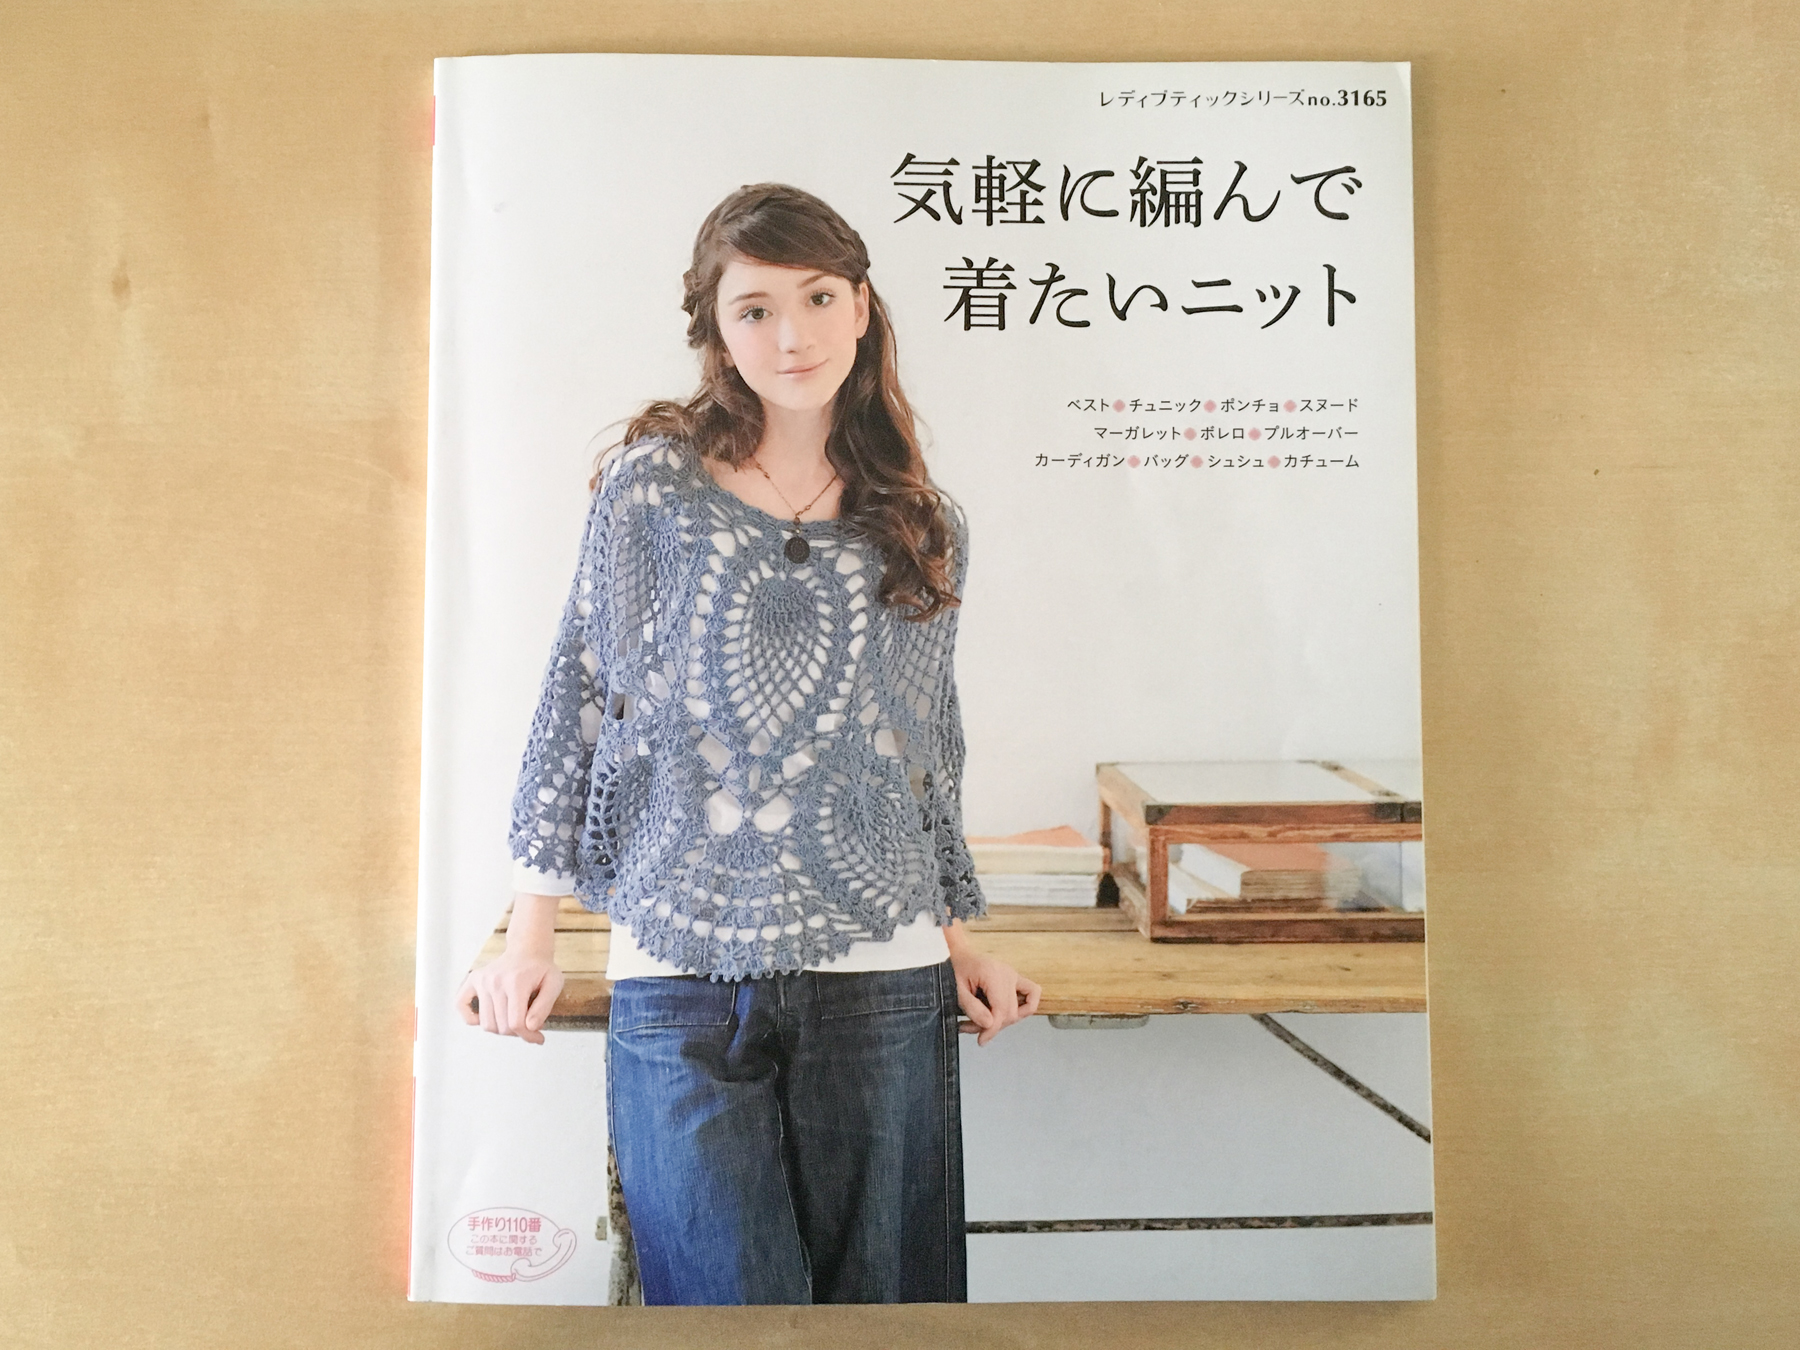 The Japanese knitting book